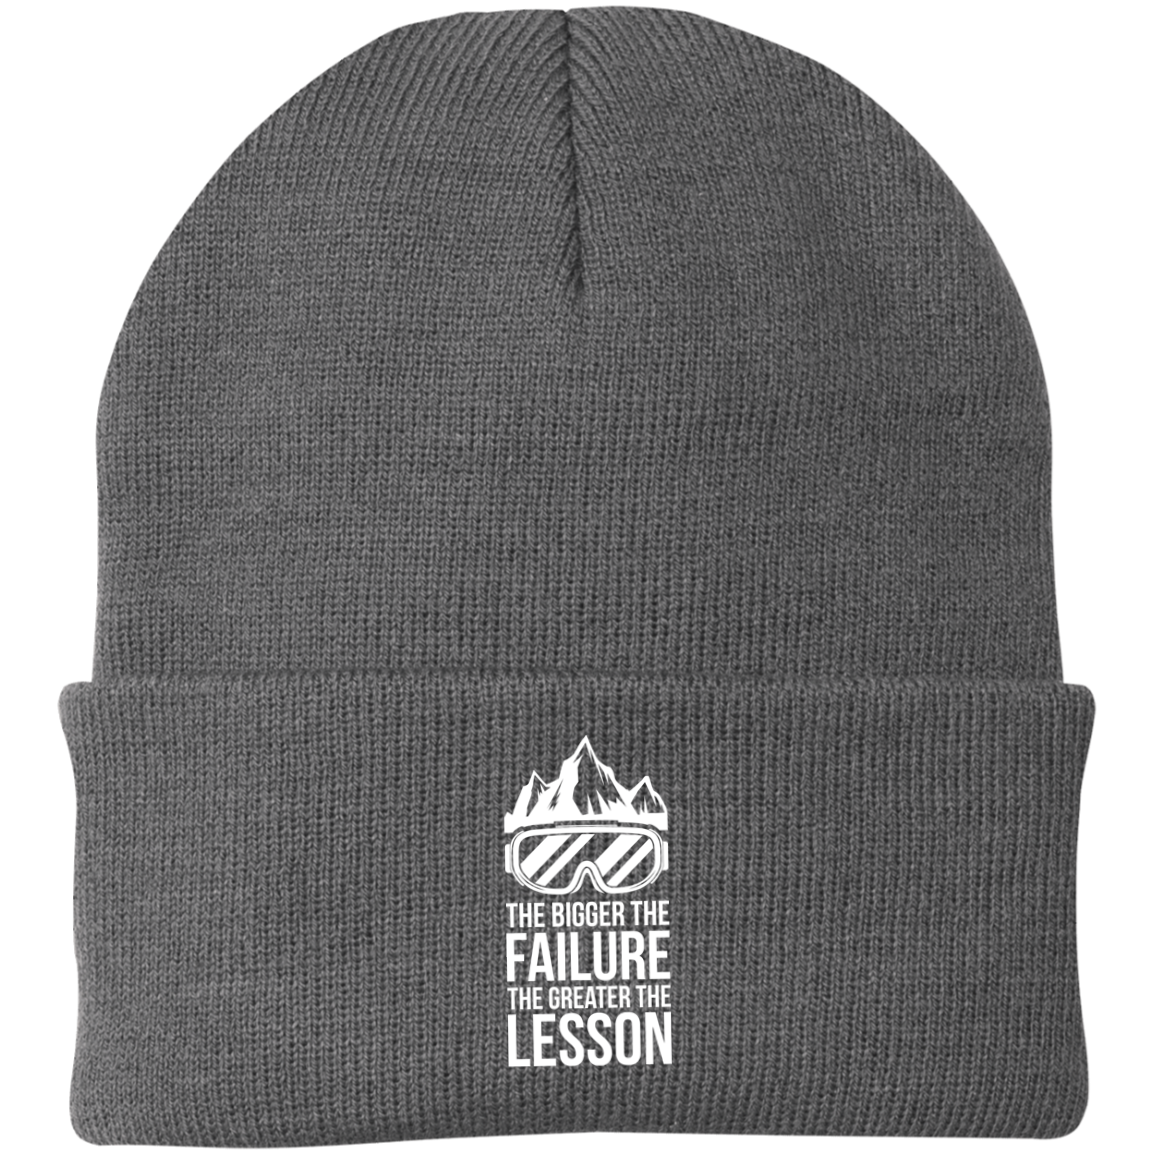 The Bigger The Failure The Greater The Lesson Knit Cap - Powderaddicts